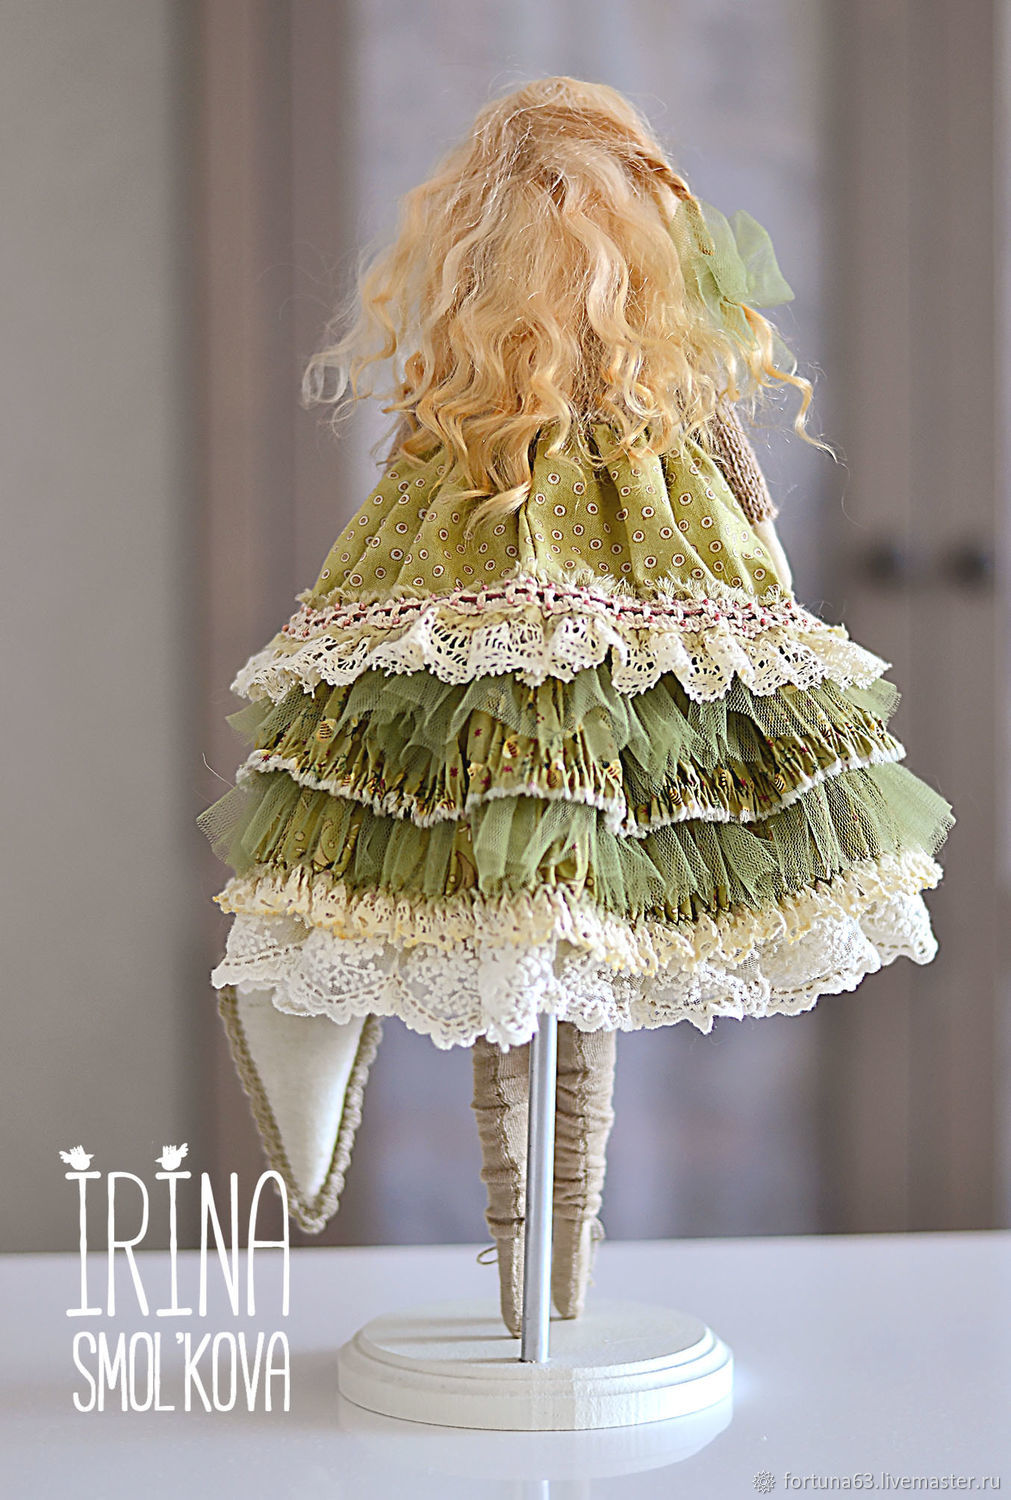 Doll Tilda Lula Shop Online On Livemaster With Shipping